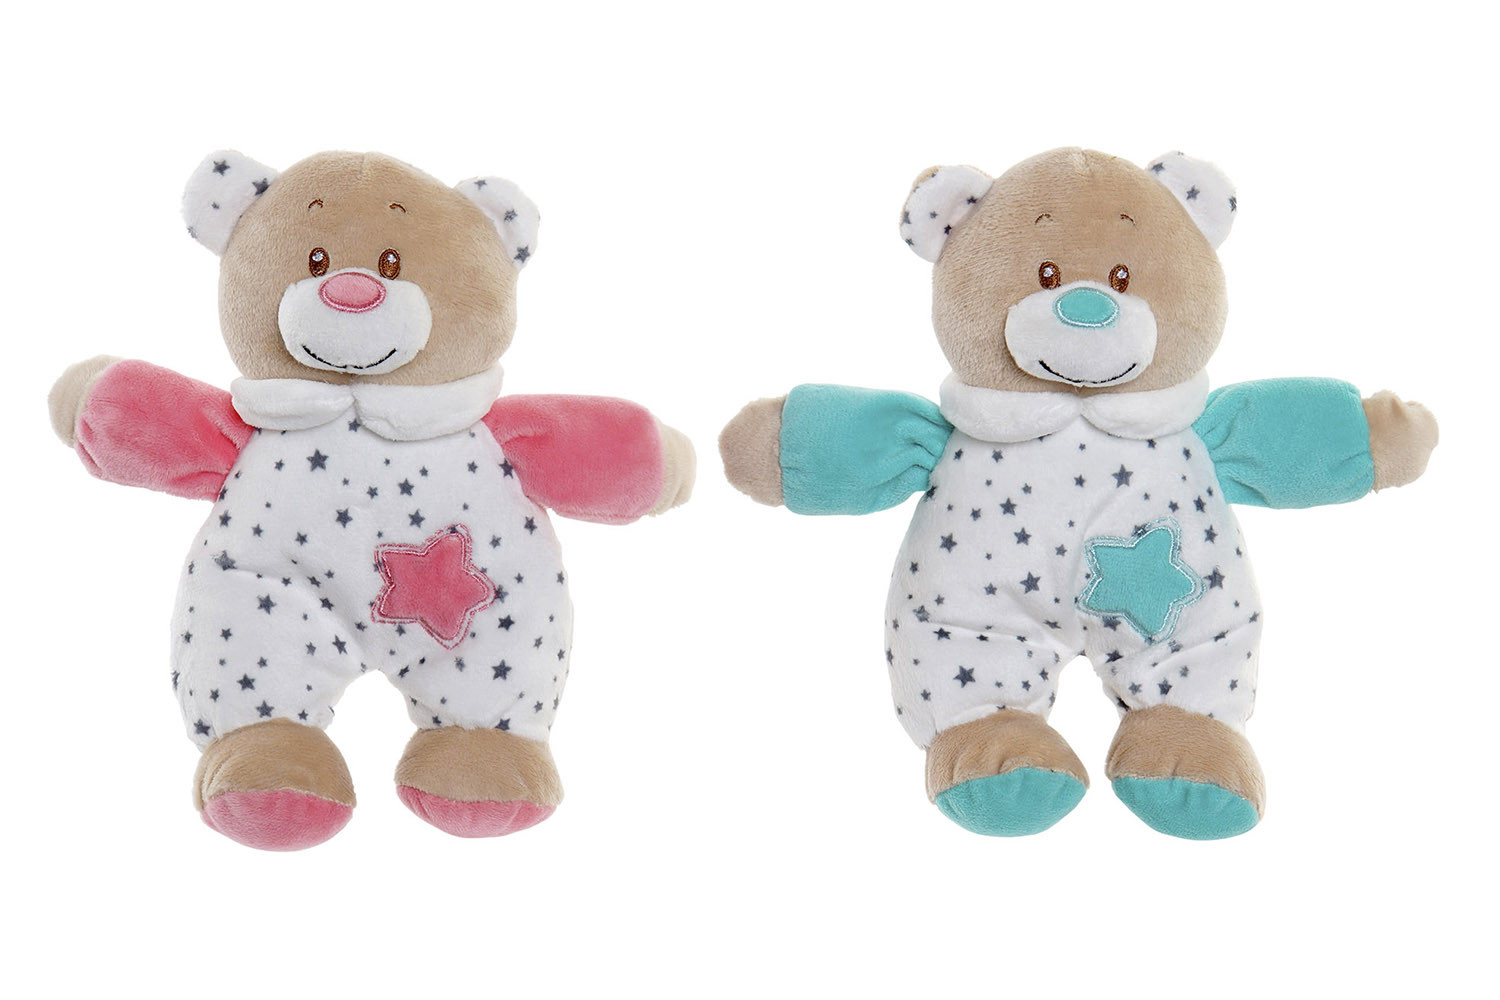 Plush Teddy bear, Rattle Baby, Rattle format Stuffed. Design of Animal, with Child style 27x6x18cm